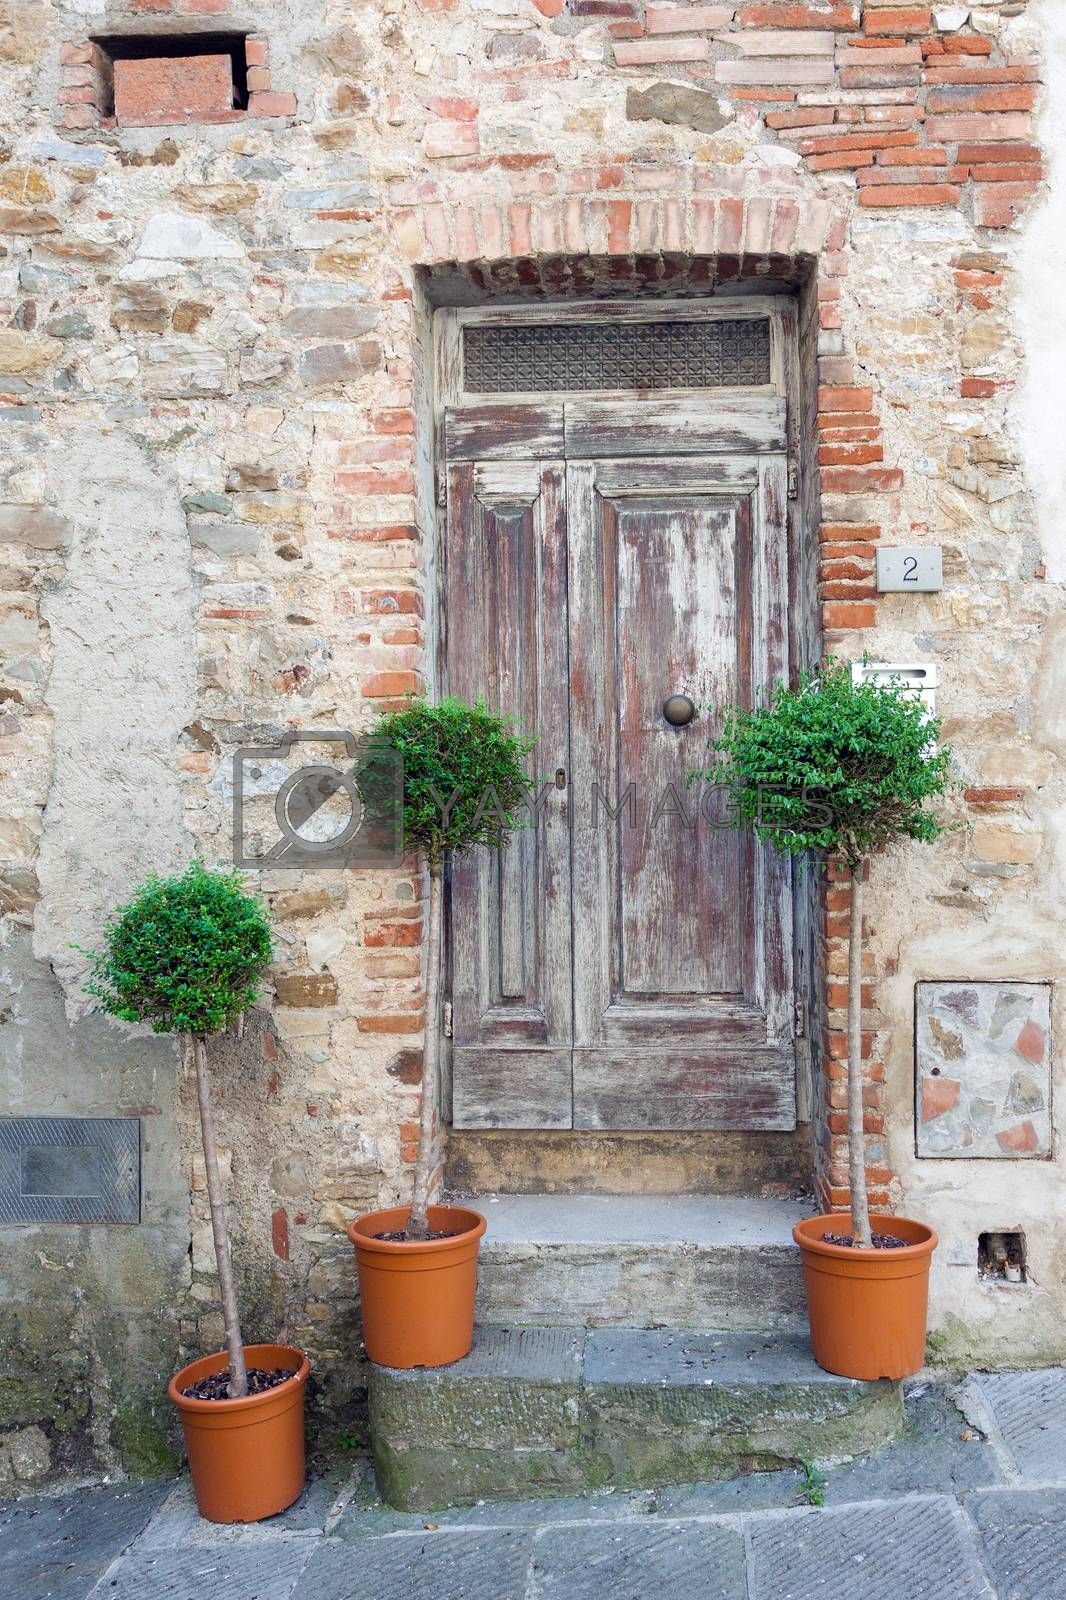 Traditional old wooden doors in Italy with three decorative boxwood trees growing in flower pots